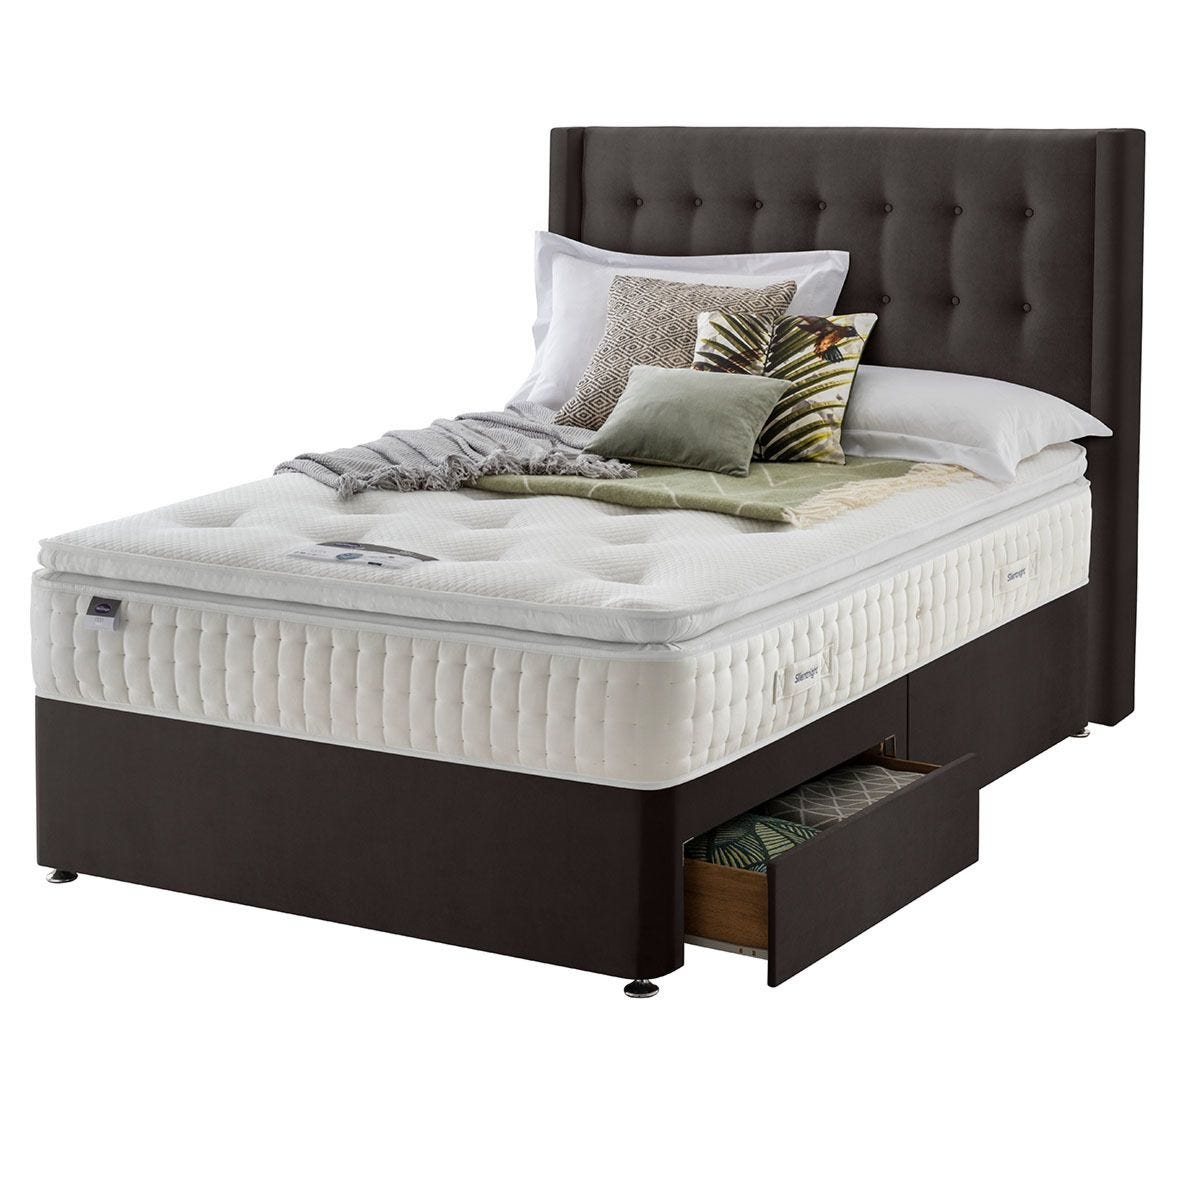 Silentnight Mirapocket Latex 1400 2-Drawer Divan Bed - Velvet Charcoal